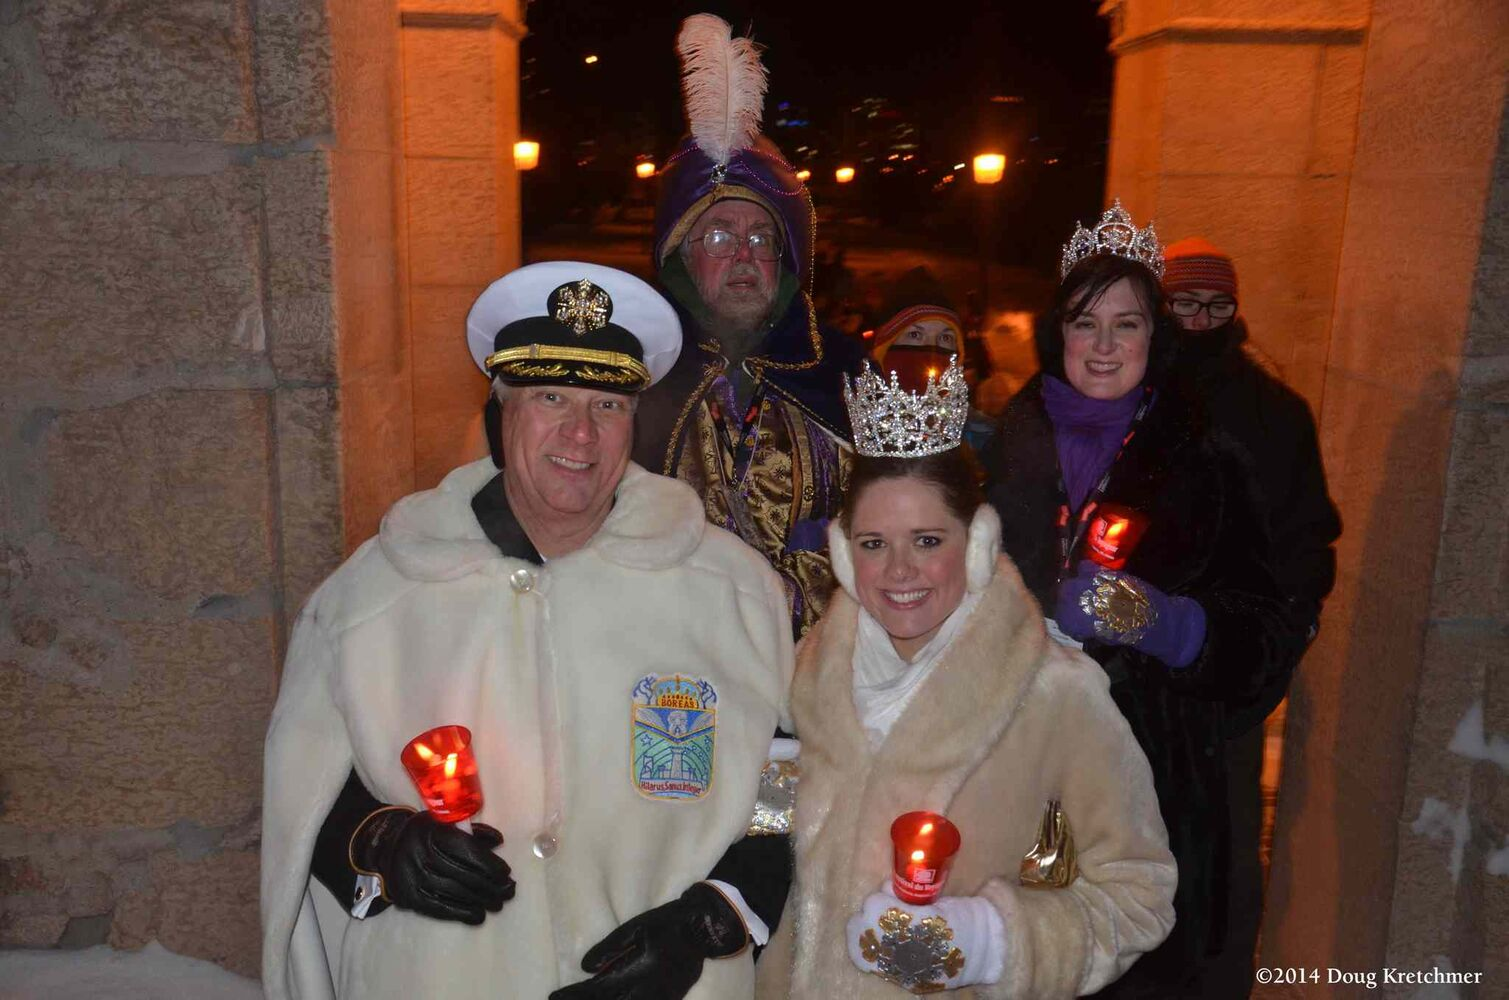 The torchlight March, led by police officers in buffalo fur coats, began at The Forks and went all the way to St. Boniface Cathedral and the grave of Louis Riel before ending at Voyageur Park. (Doug Kretchmer / CNC)